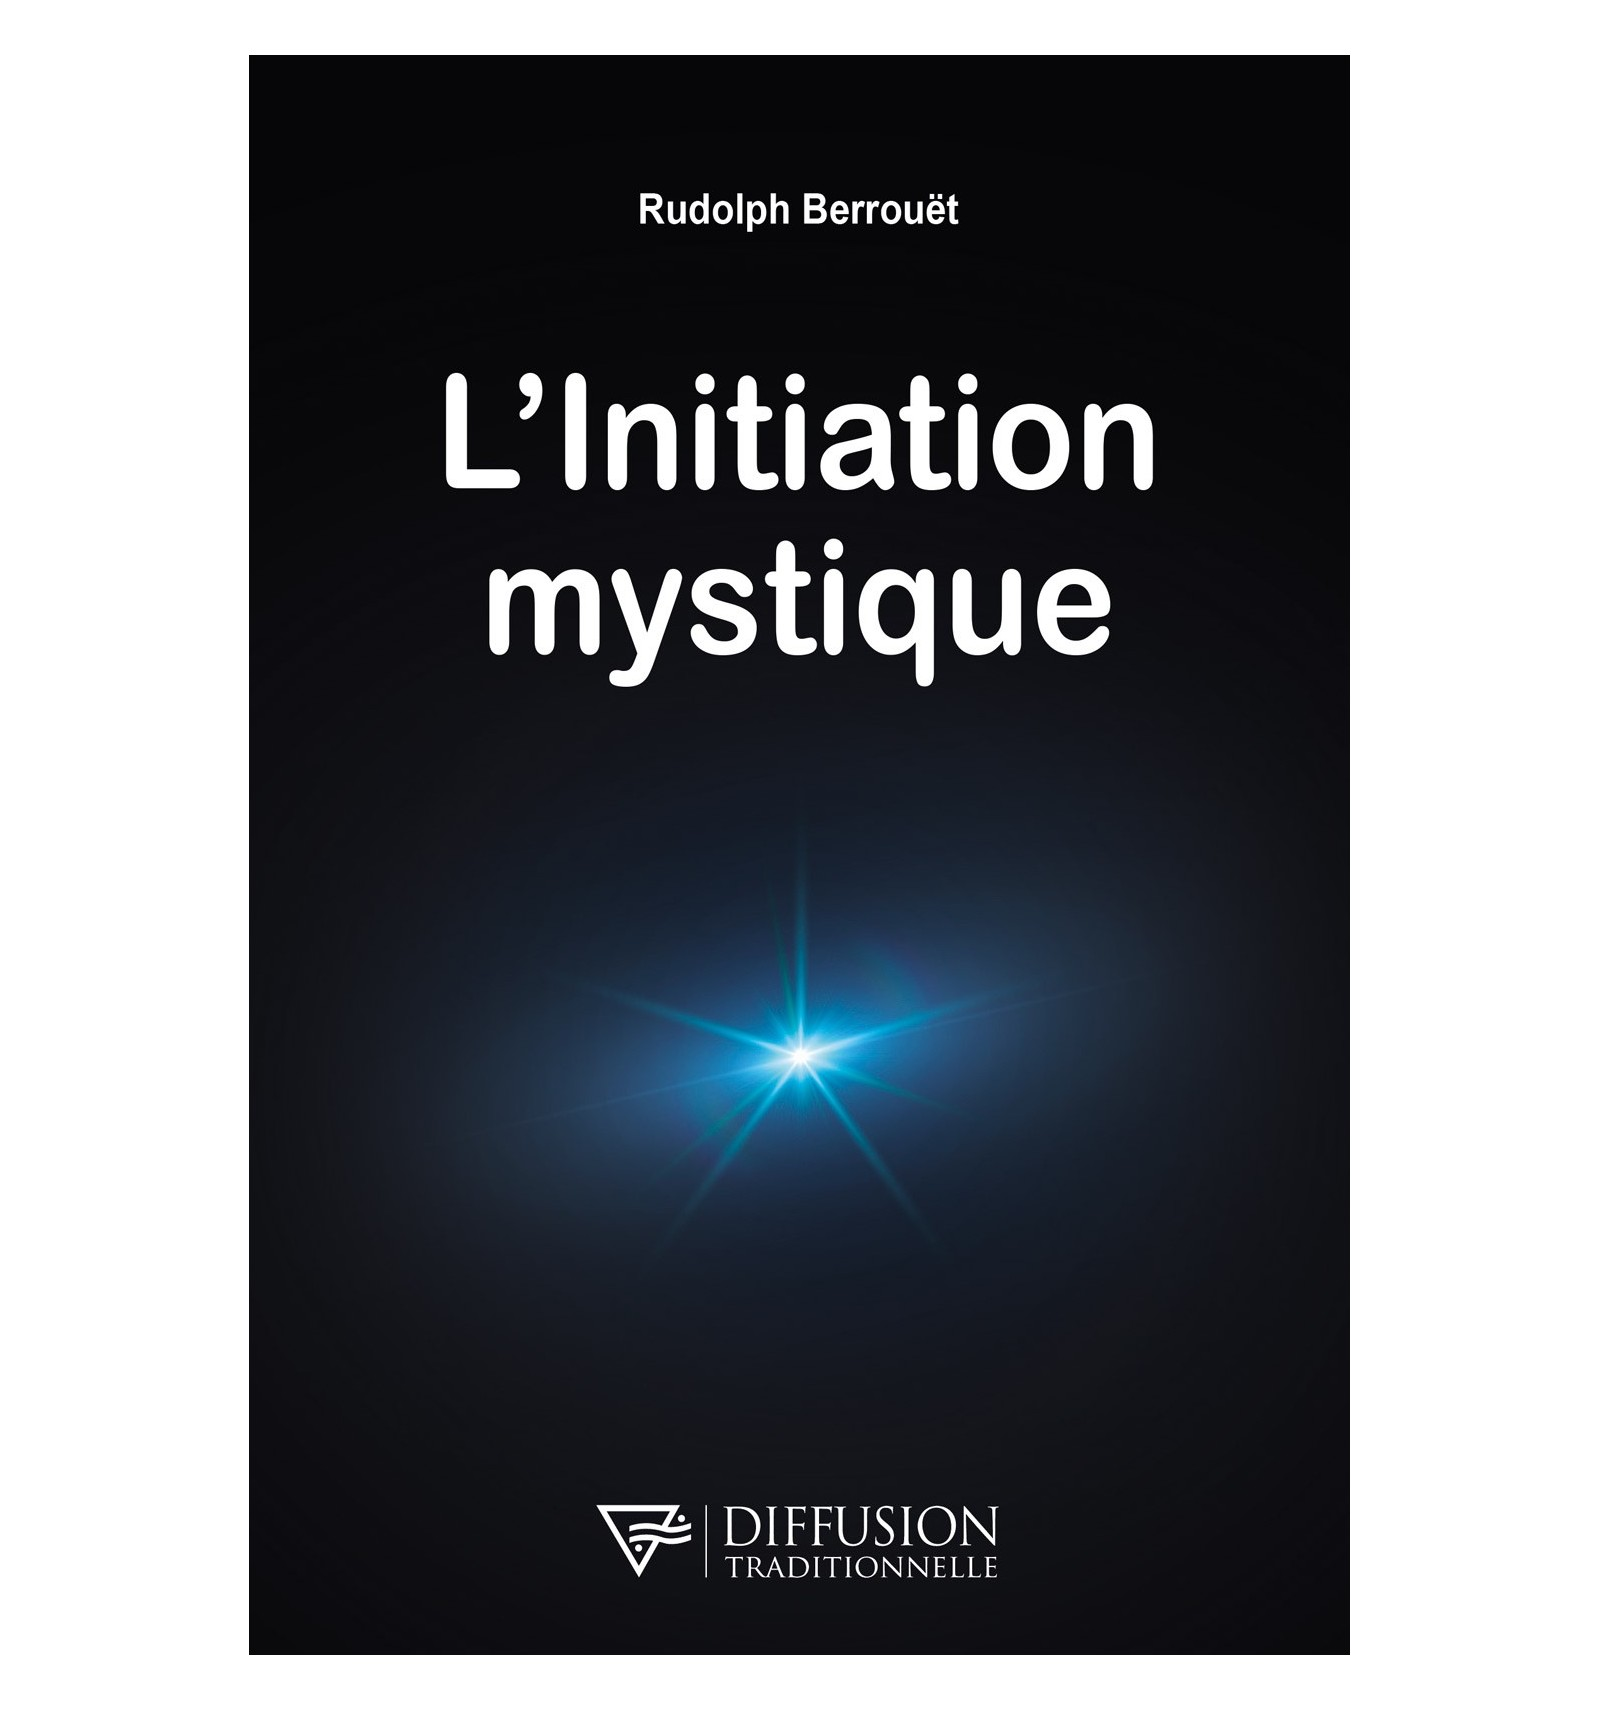 01 initiation mystique